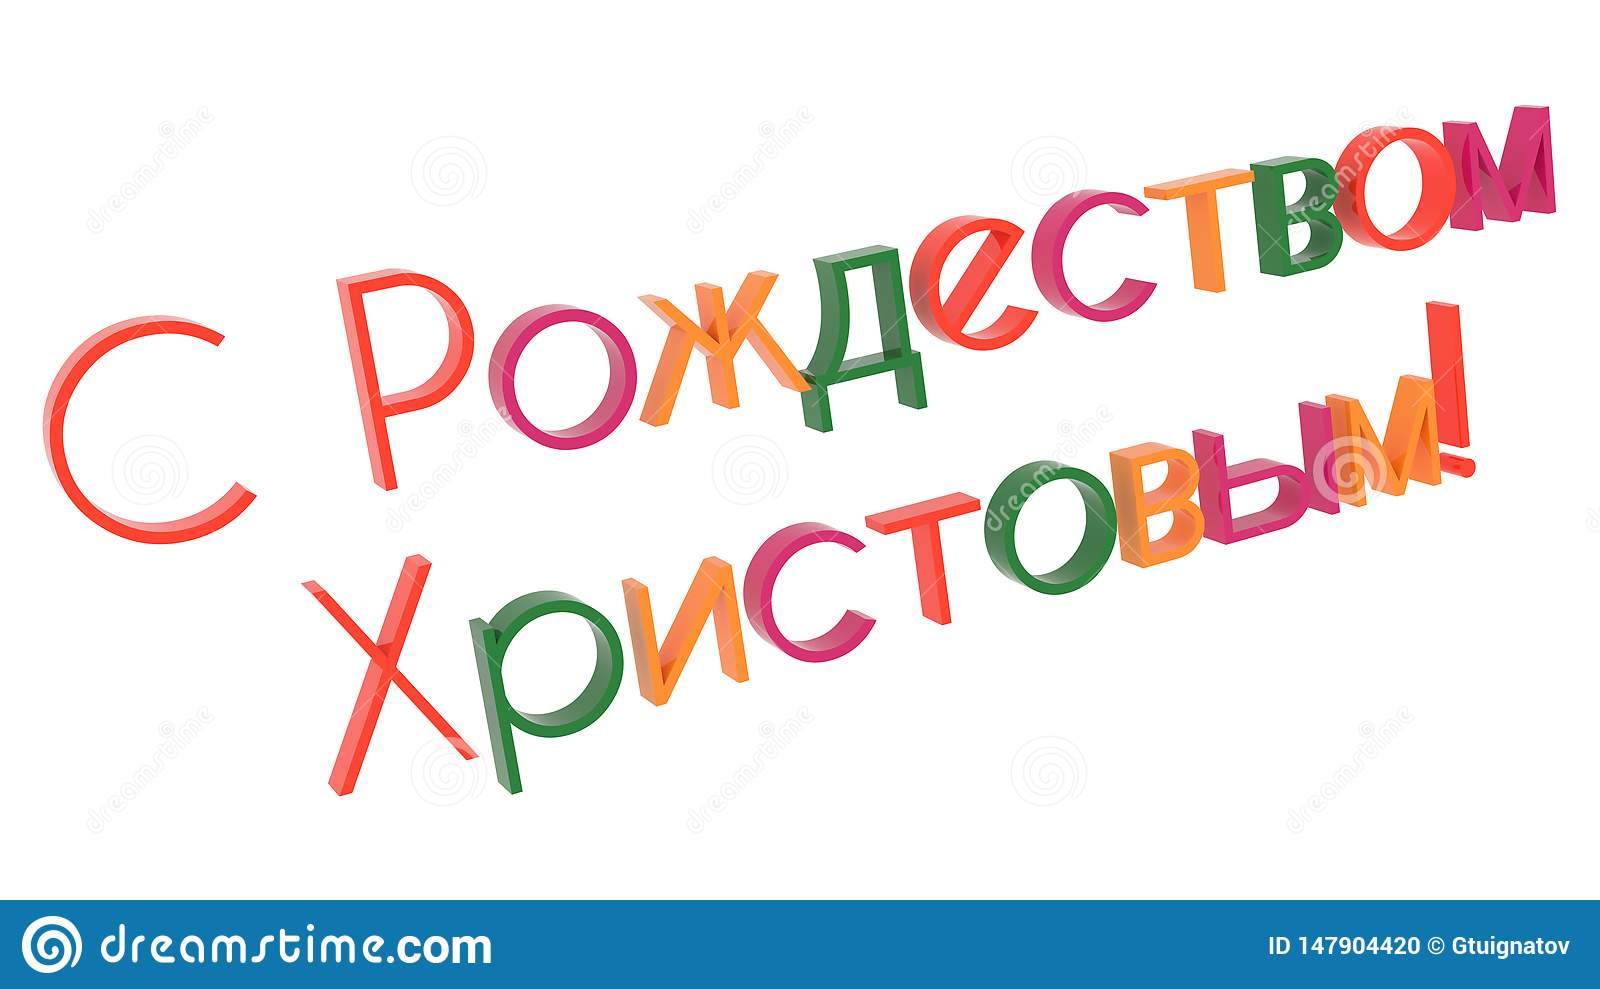 Merry Christmas In Russian Words 3D Rendered Congratulation Text With Thin Font Illustration Colored With Tetrad Colors 6 Degrees